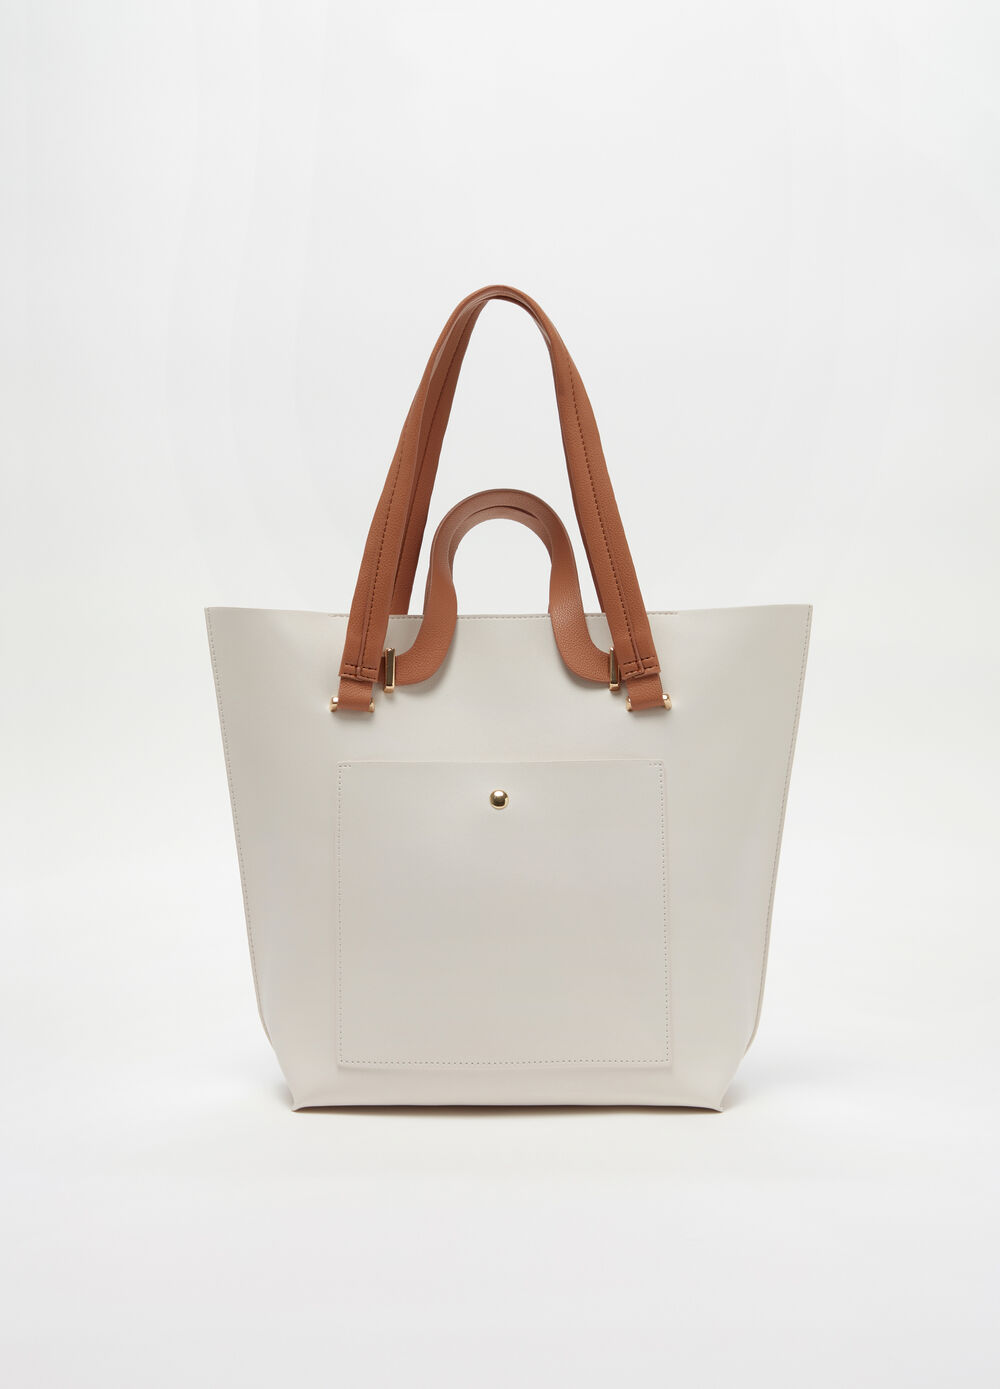 Tote bag with double handle and zip fastening.